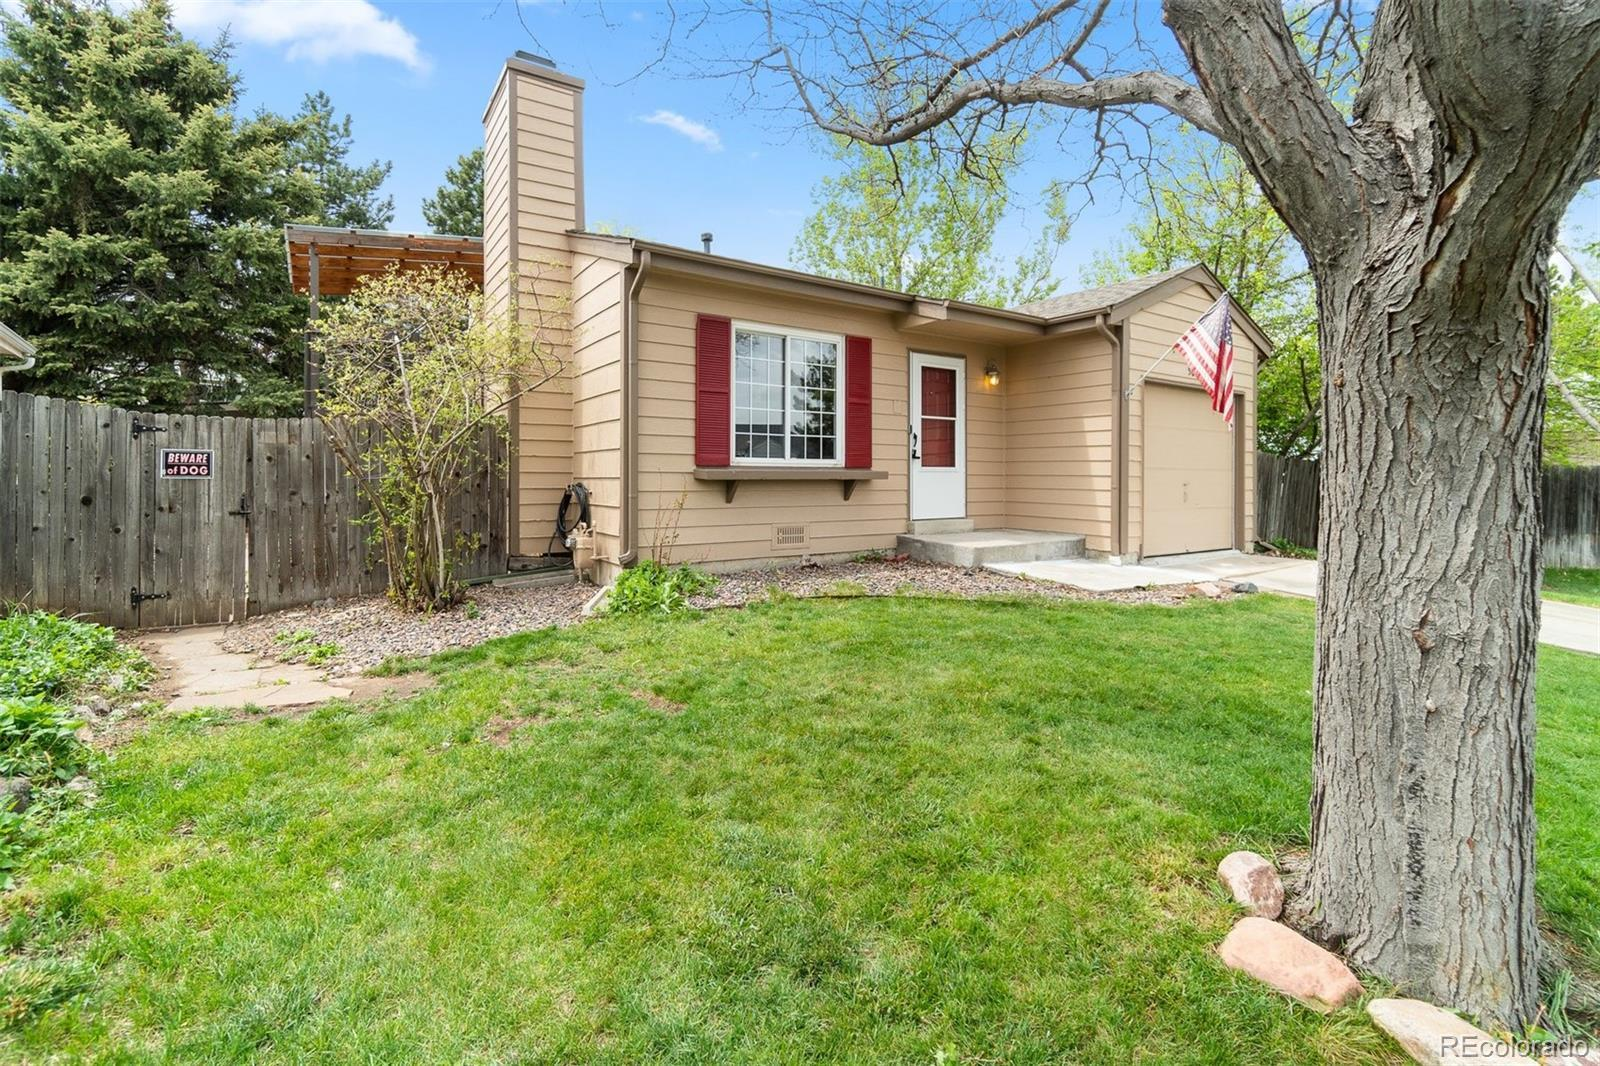 5692 W 77th Avenue, Westminster, CO 80003 - #: 7019269